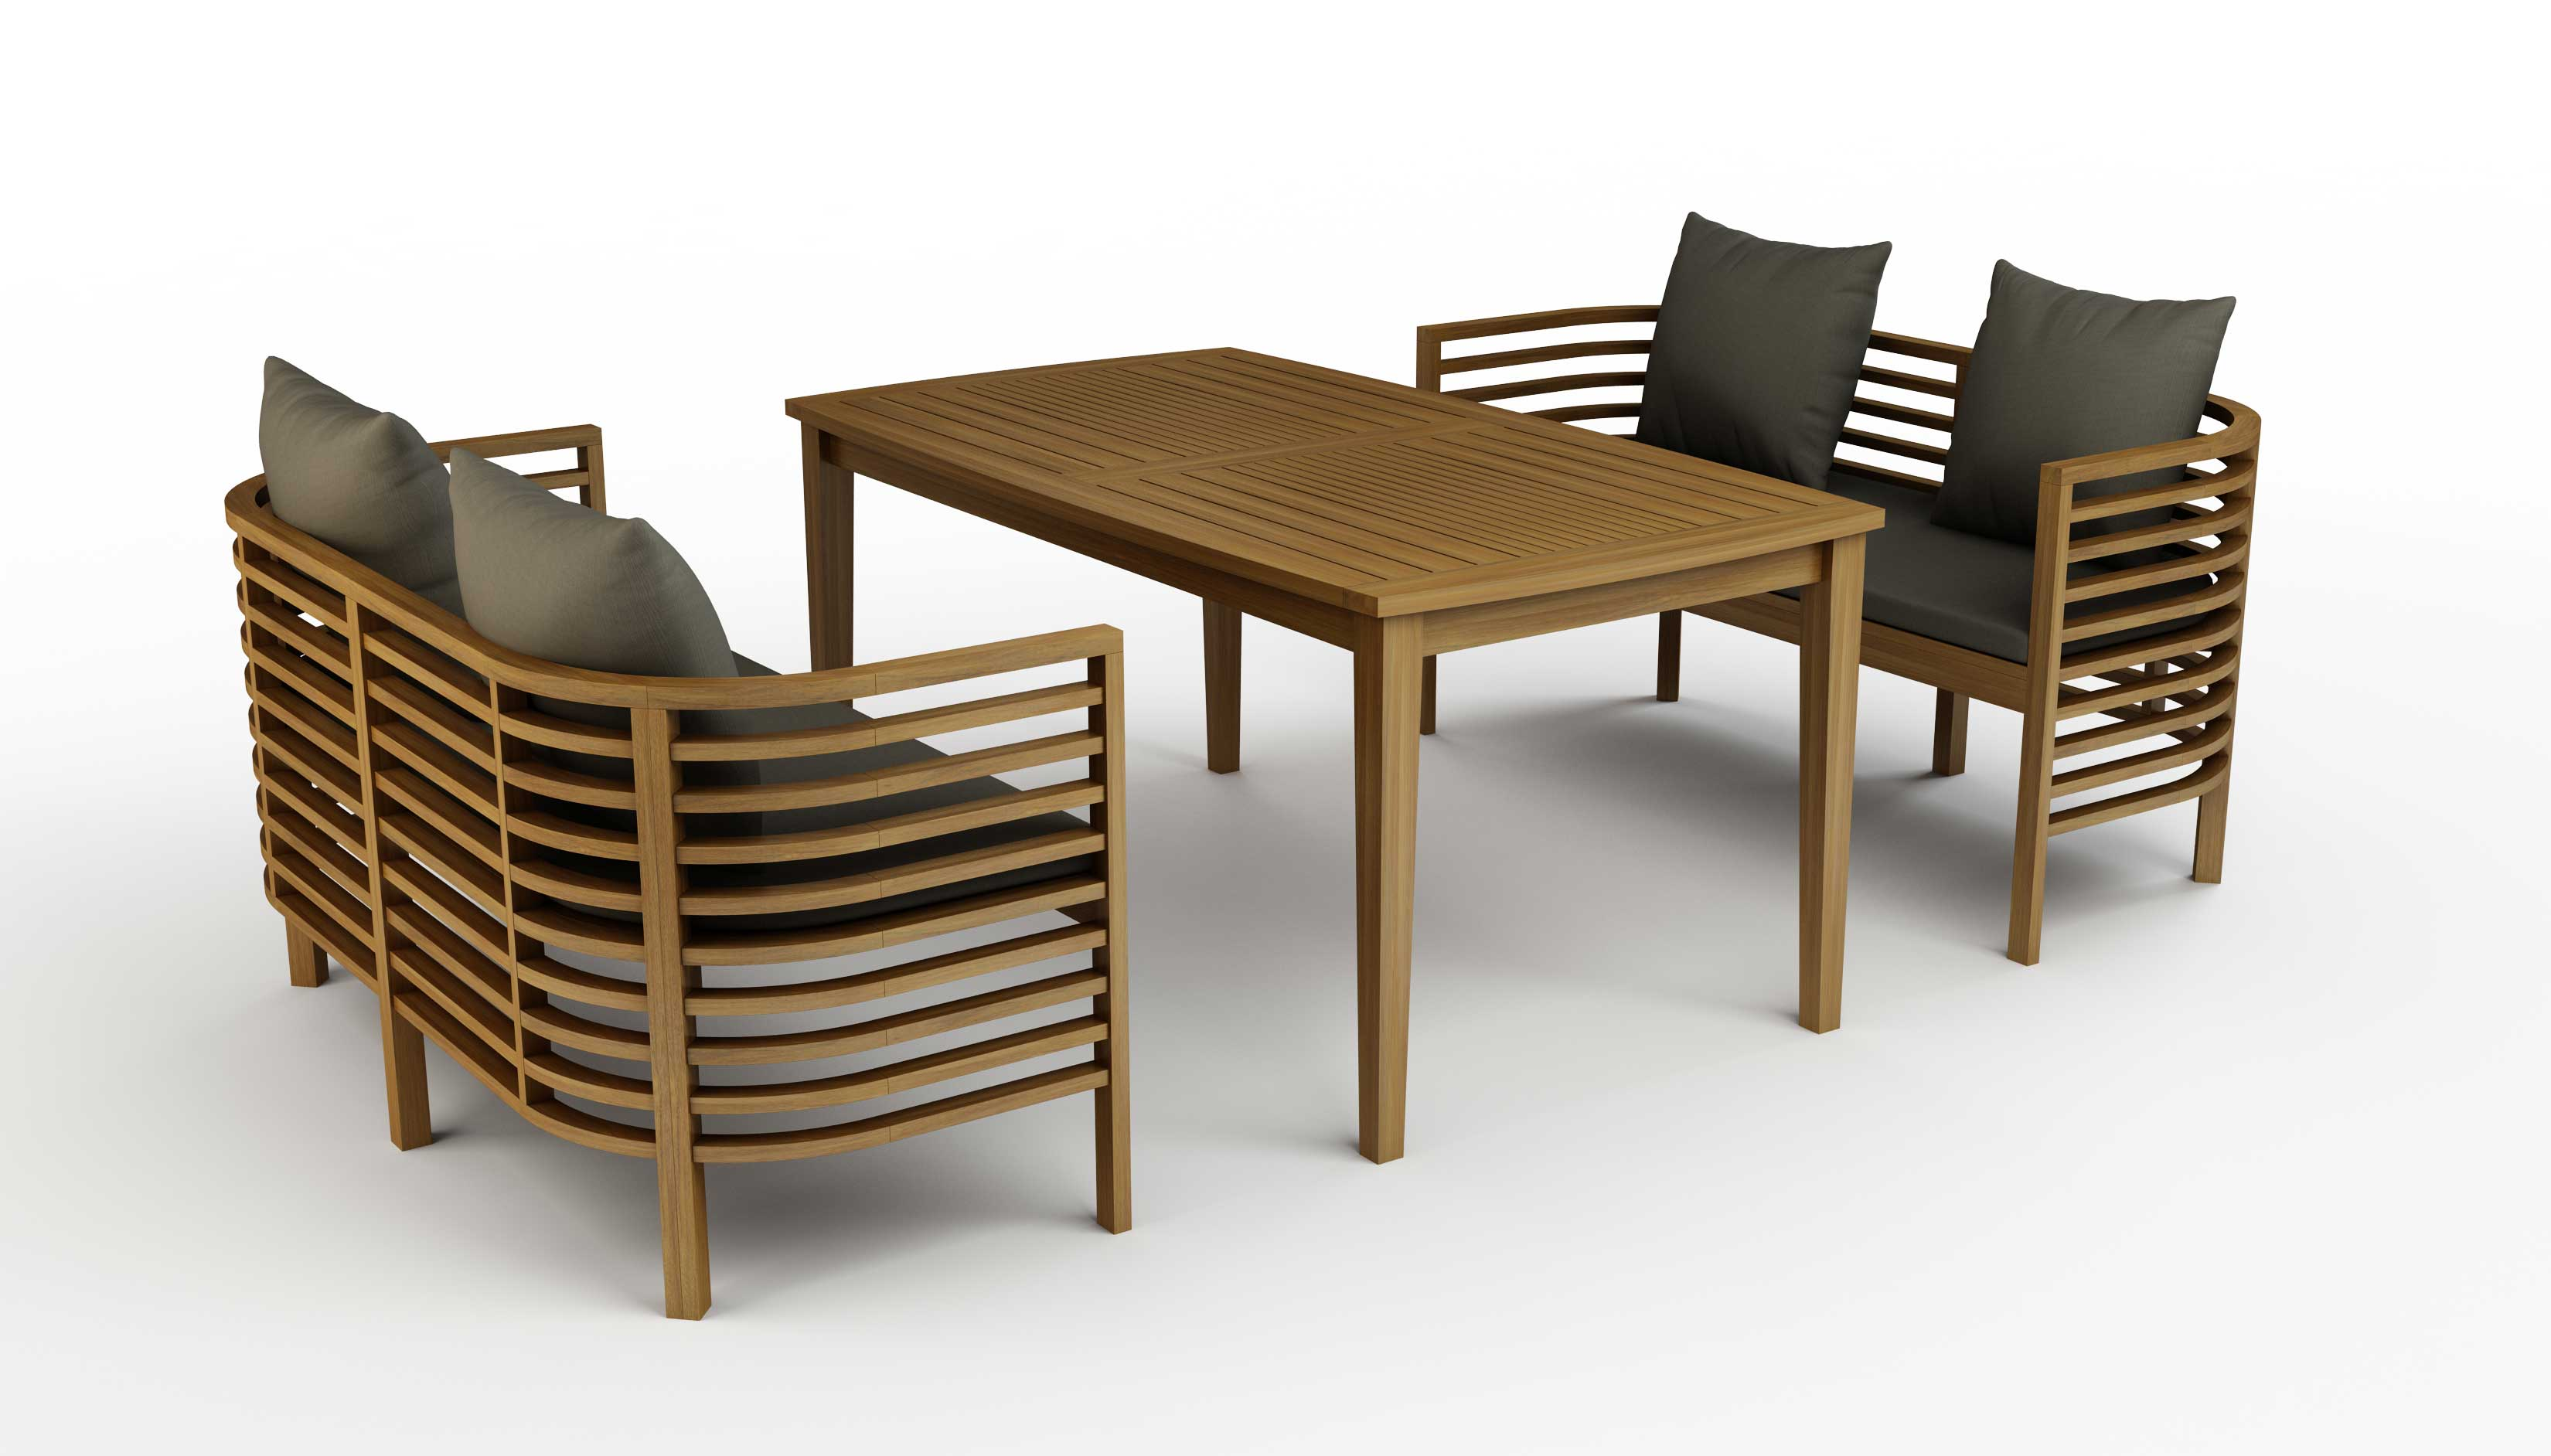 Considerations when looking to purchase outdoor seating